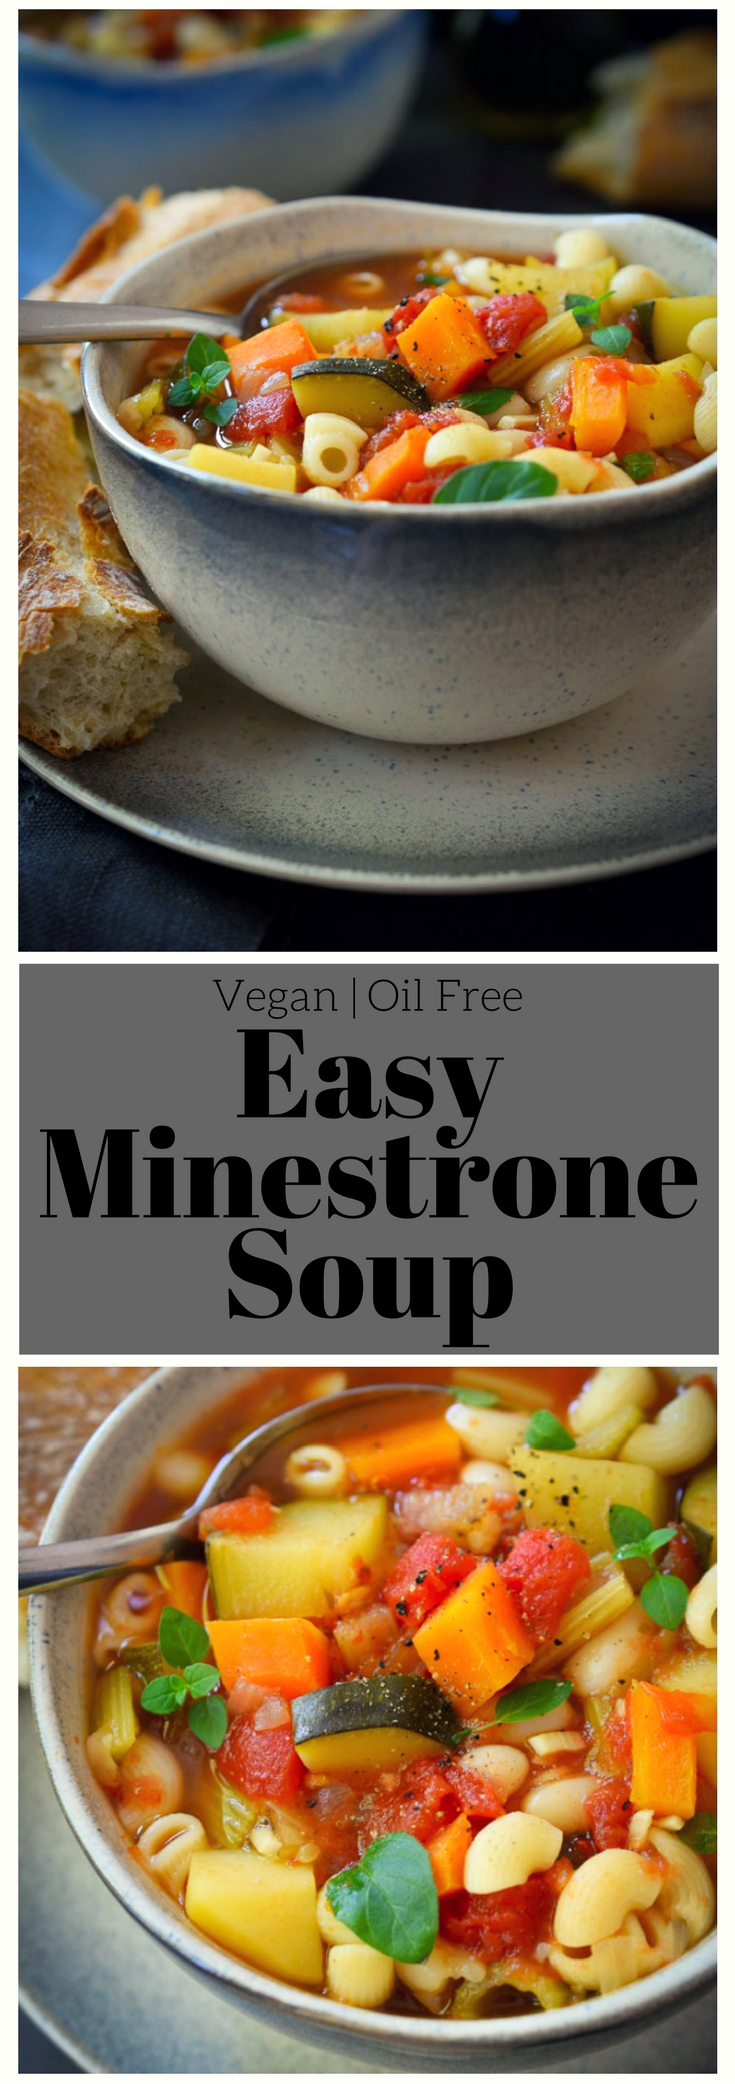 This vegan minestrone soup is made with veggies, white beans and pasta simmered in a flavourful, herby tomato broth. Easy to make and totally adaptable to your favourite seasonal veggies, this hearty and healthy soup is a satisfying meal year round!